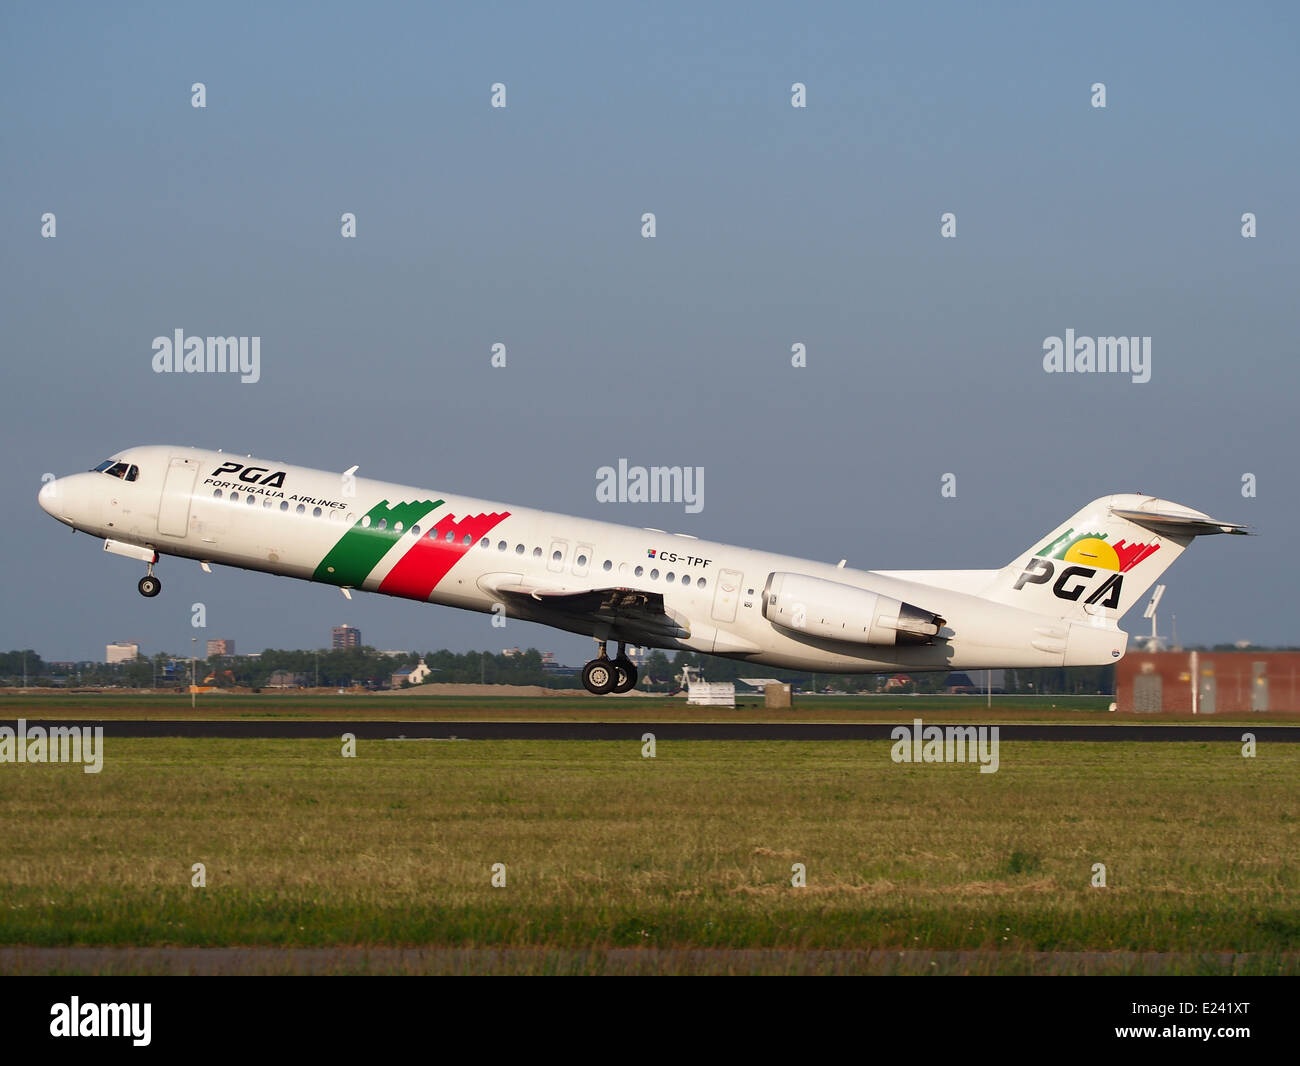 CS-TPF PGA Portugalia Fokker 100 take-off from Schiphol (AMS - EHAM), The Netherlands, 17may2014, pic-2 - Stock Image